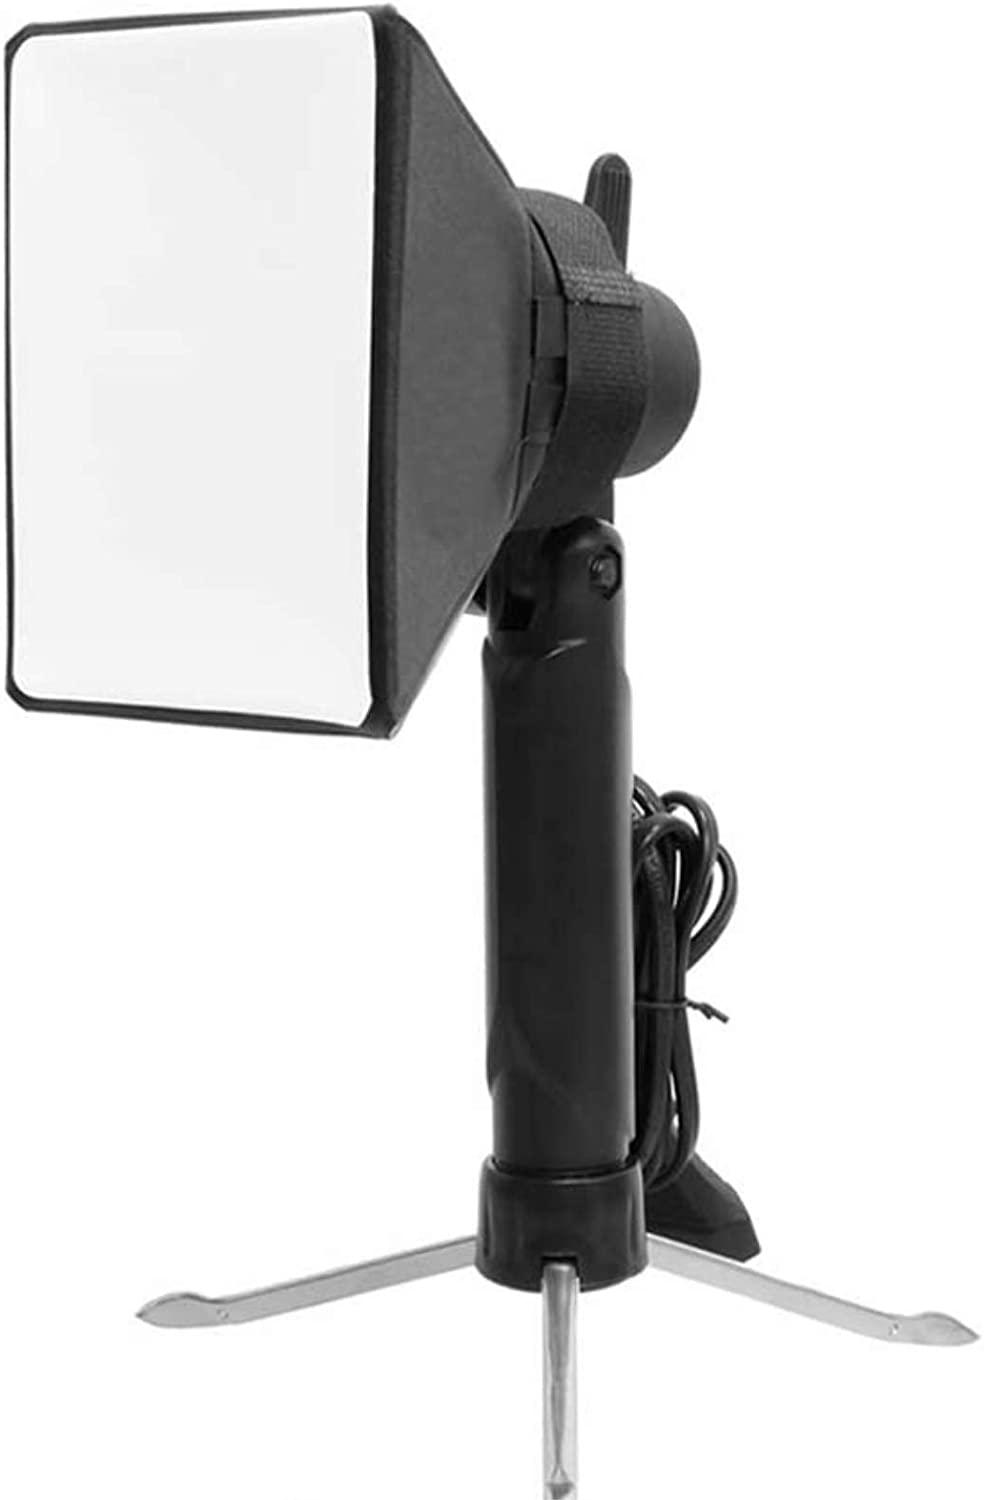 Selens Mini Softbox Lighting Kit Table Top Led Lamp 2700w Warm Continuous Light for Photo Video Studio and Small Product Photography